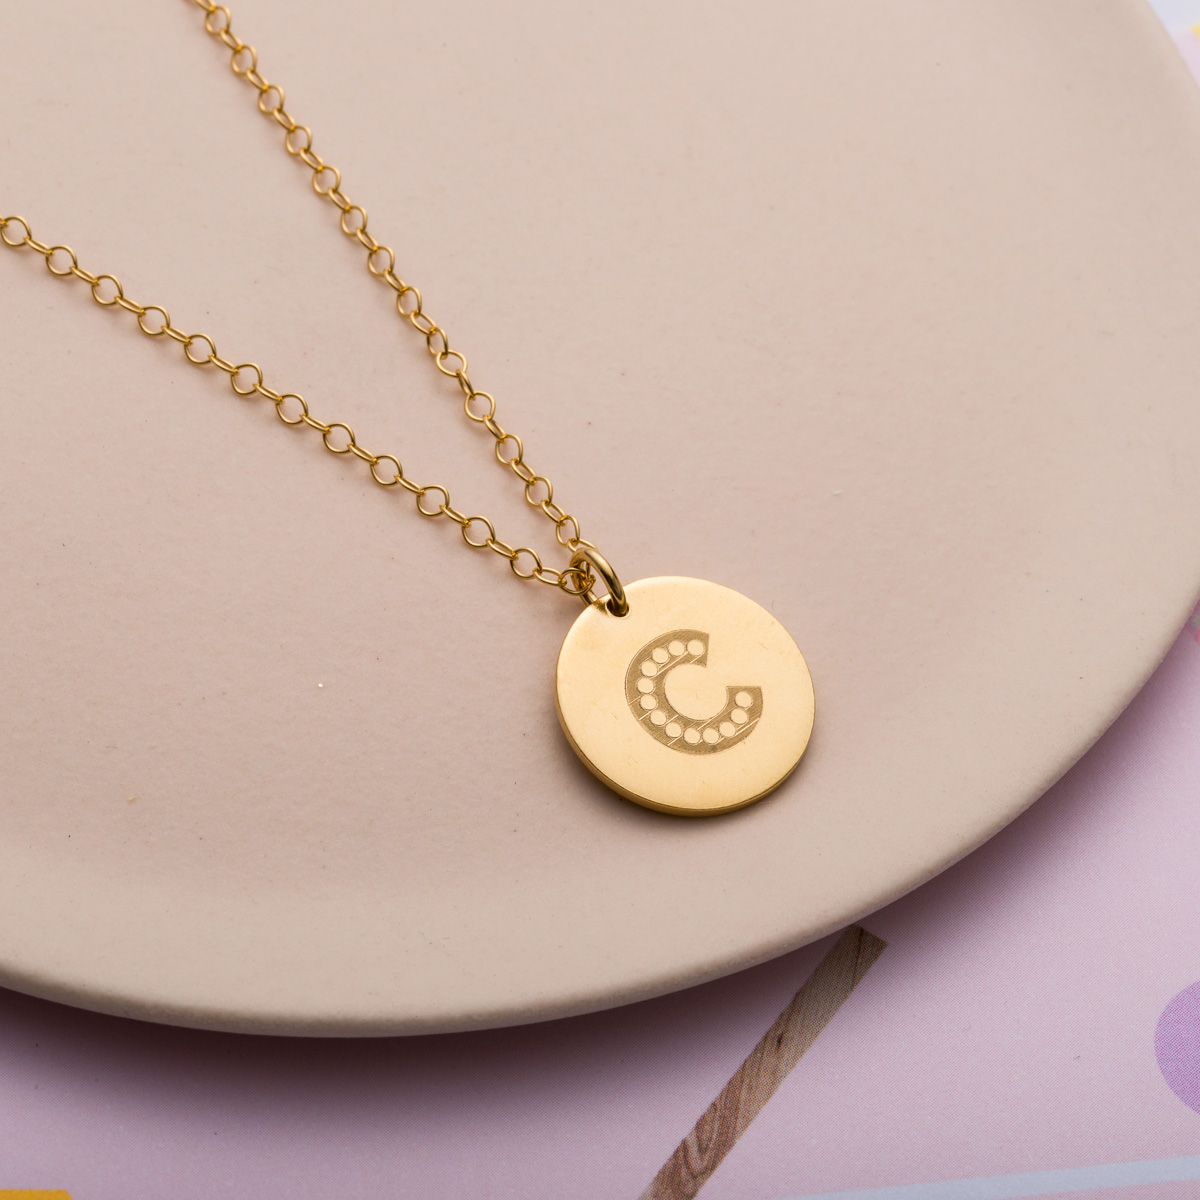 Personalised Posh Totty Designs Letter In Lights Coin Necklace